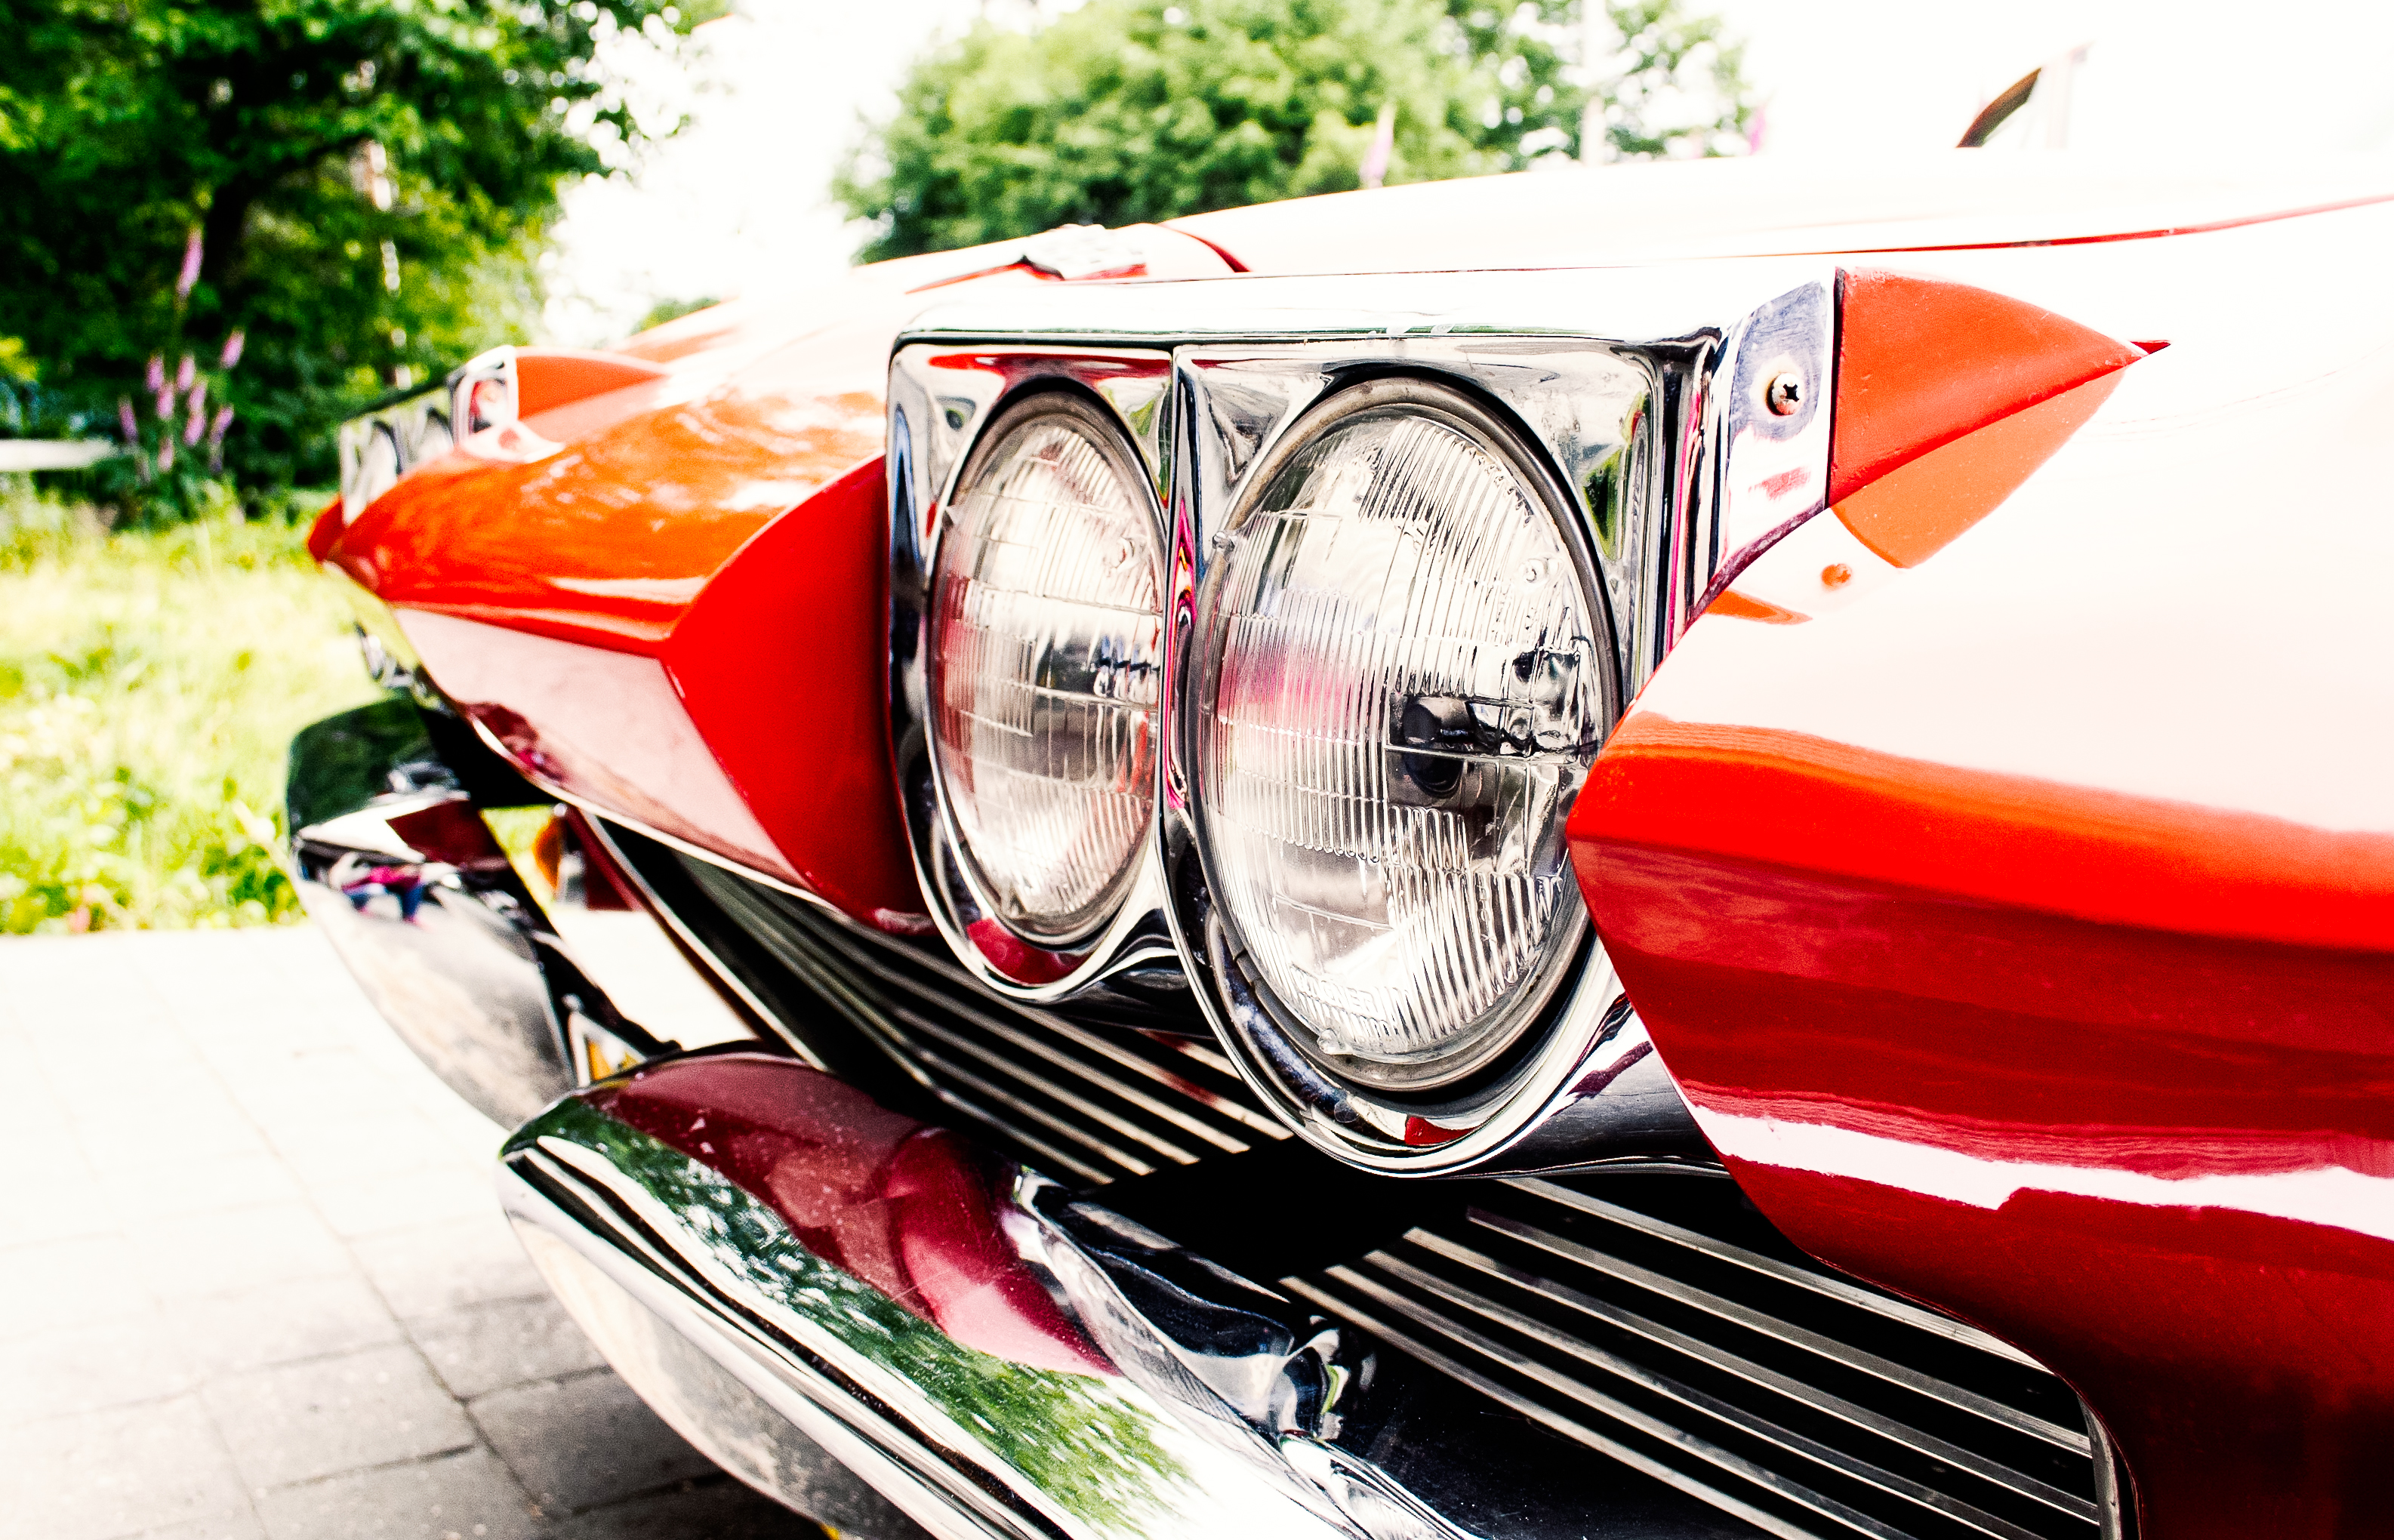 1964 Chevrolet Corvette headlights